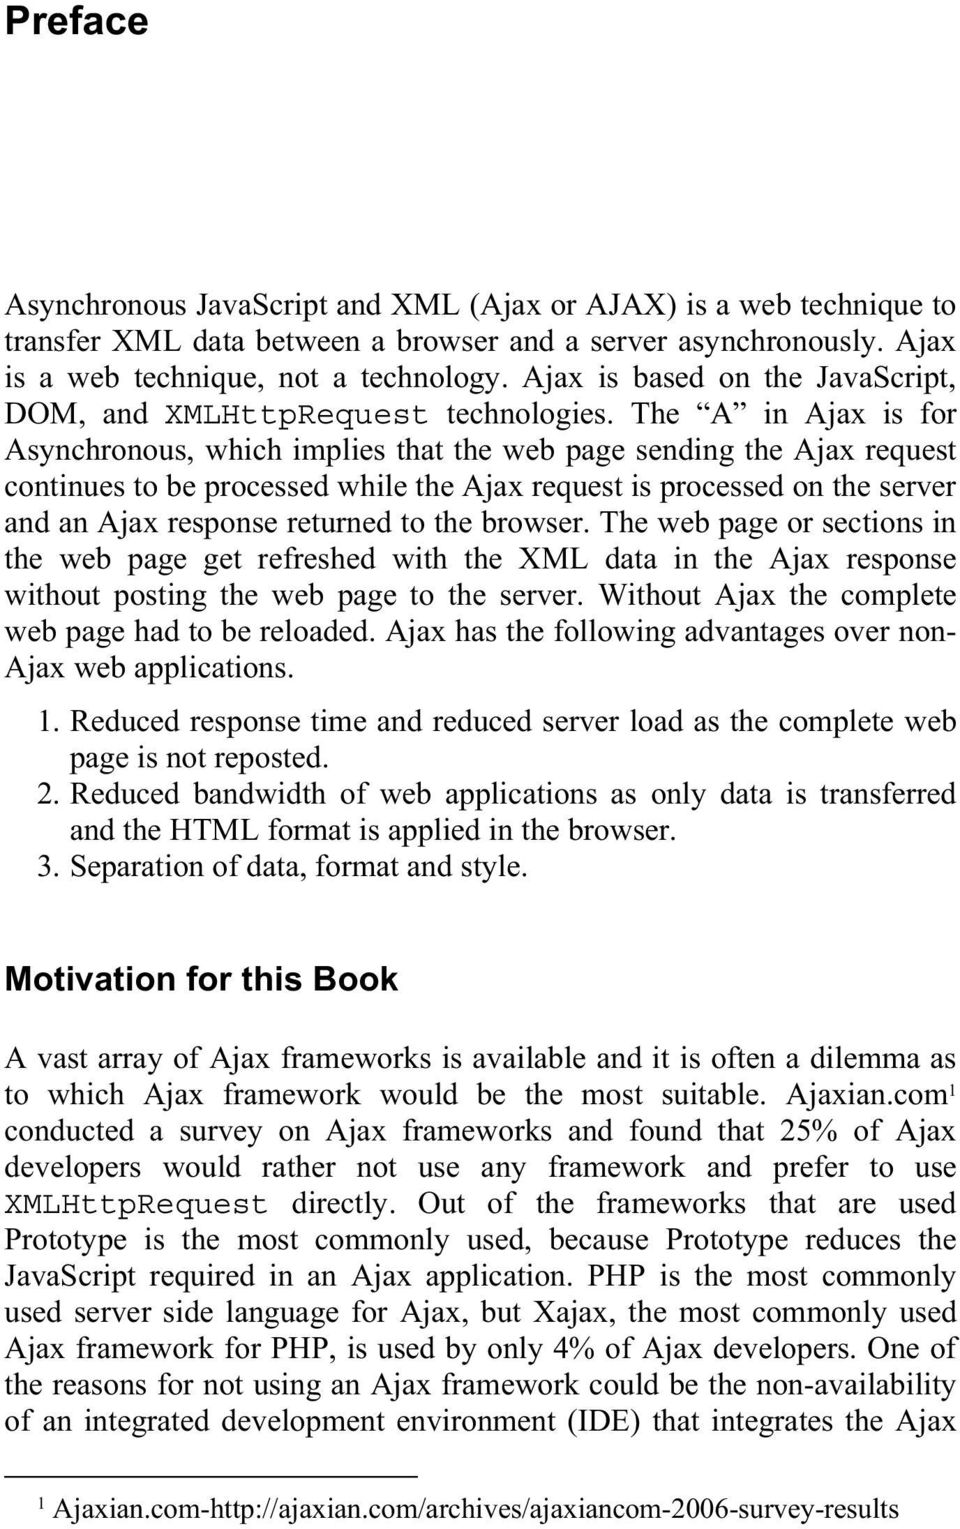 The A in Ajax is for Asynchronous, which implies that the web page sending the Ajax request continues to be processed while the Ajax request is processed on the server and an Ajax response returned